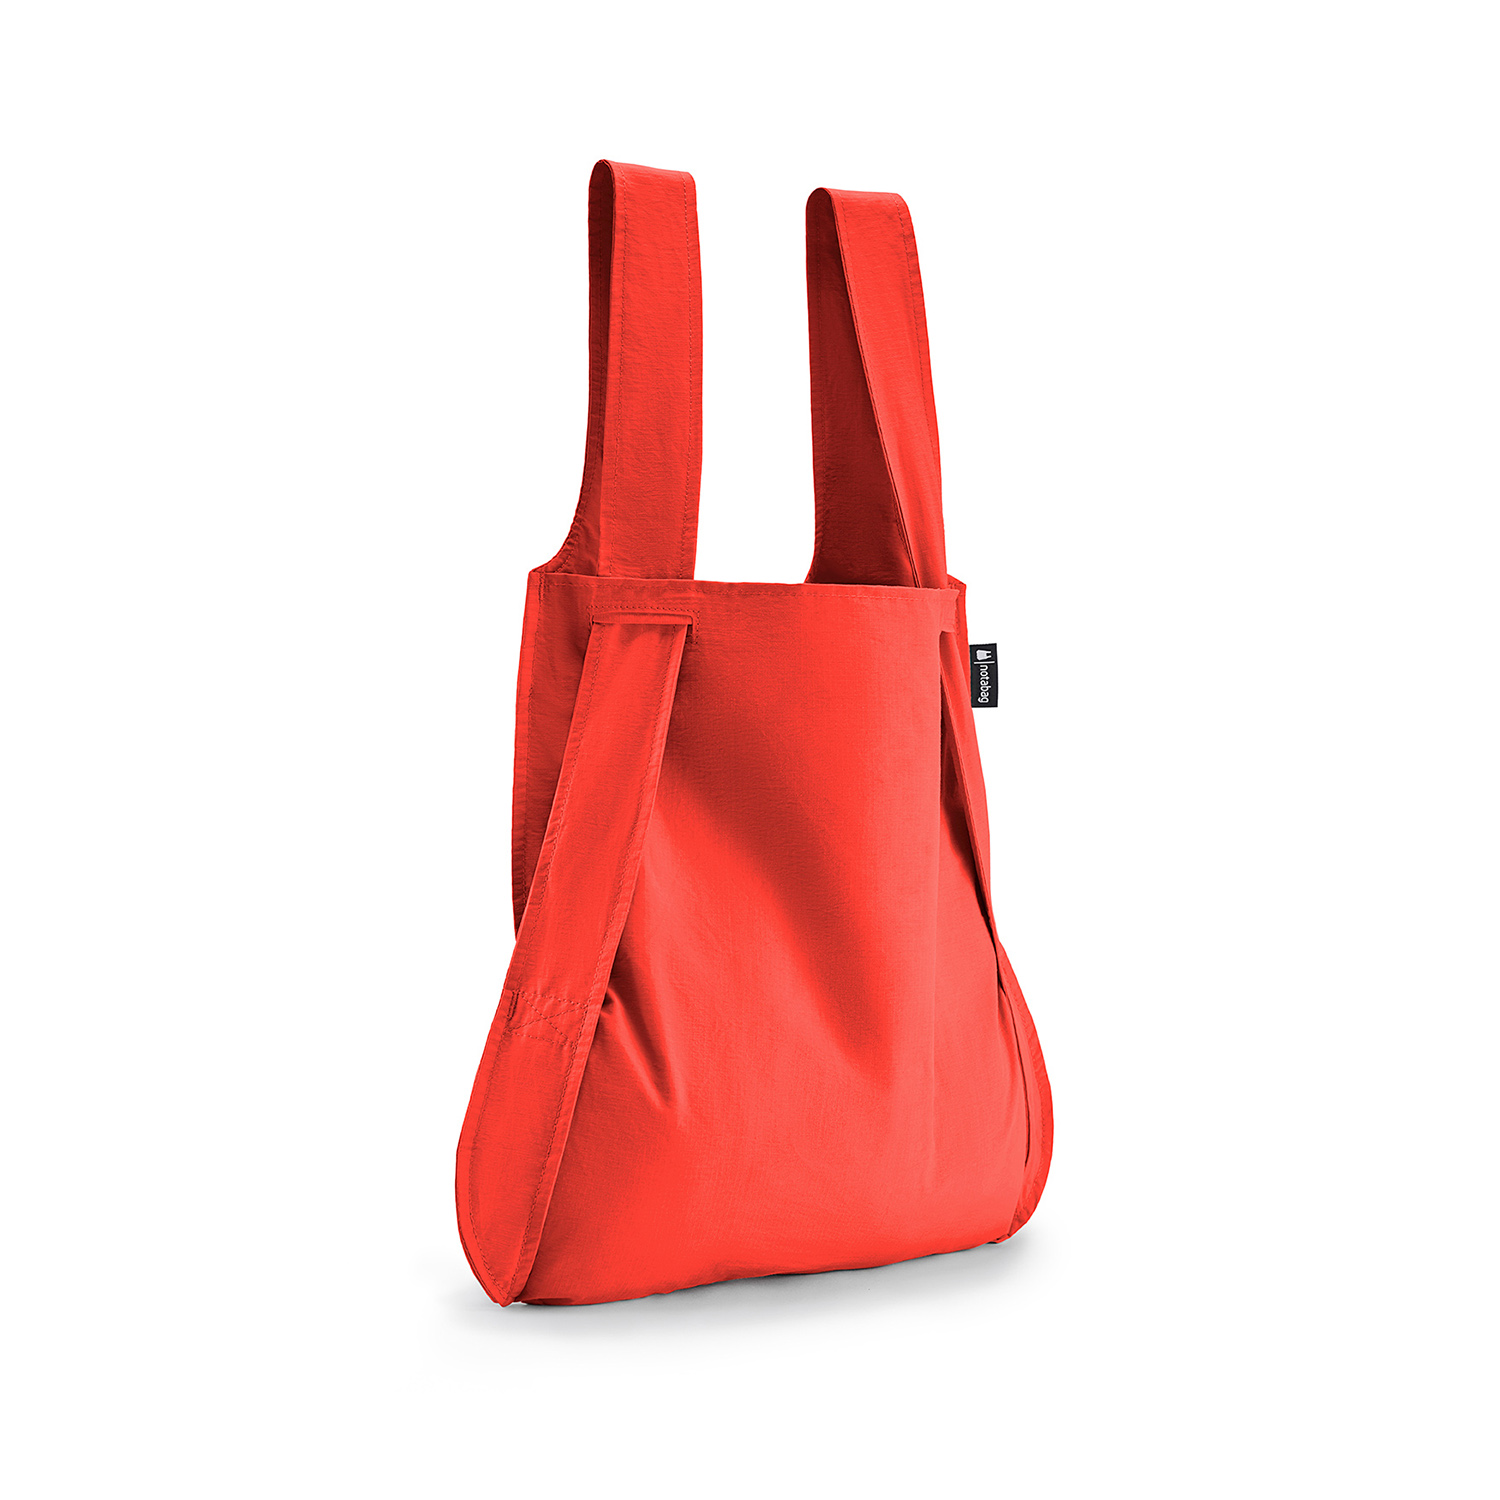 notabag_bagview_red